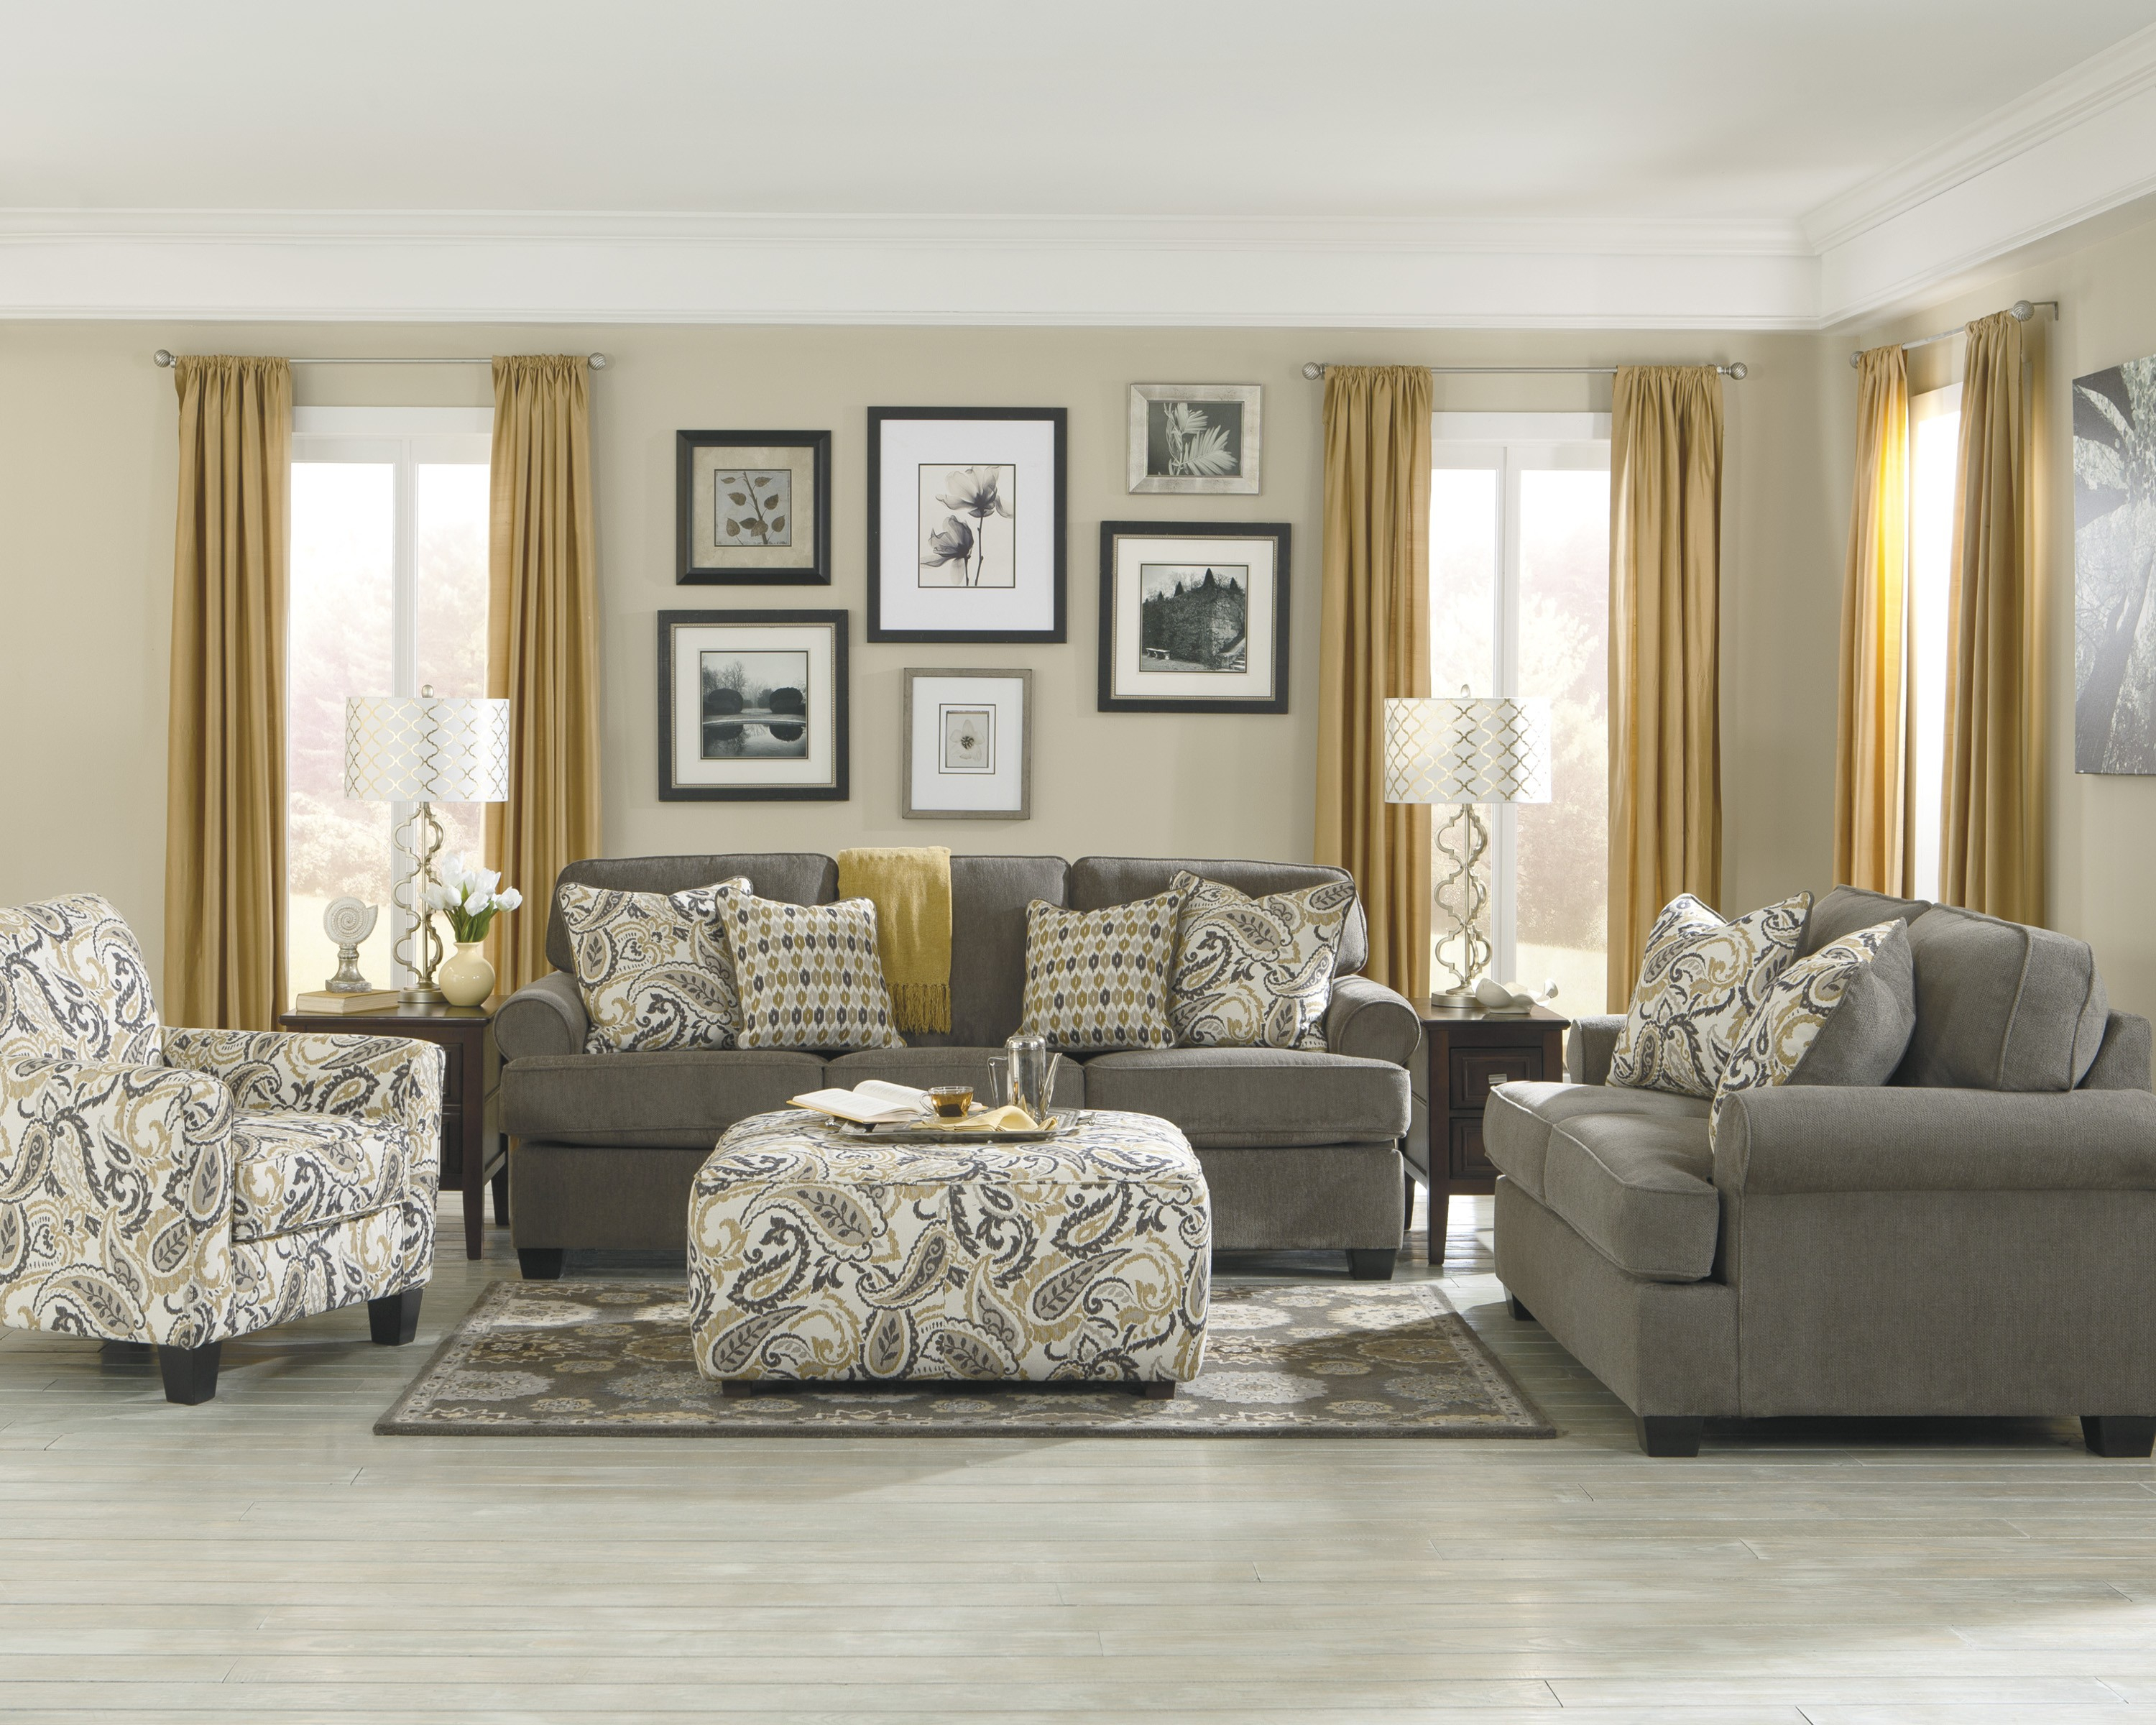 Best Sectional Sofa For Living Room Design Home Design with Beautiful Living Room Set